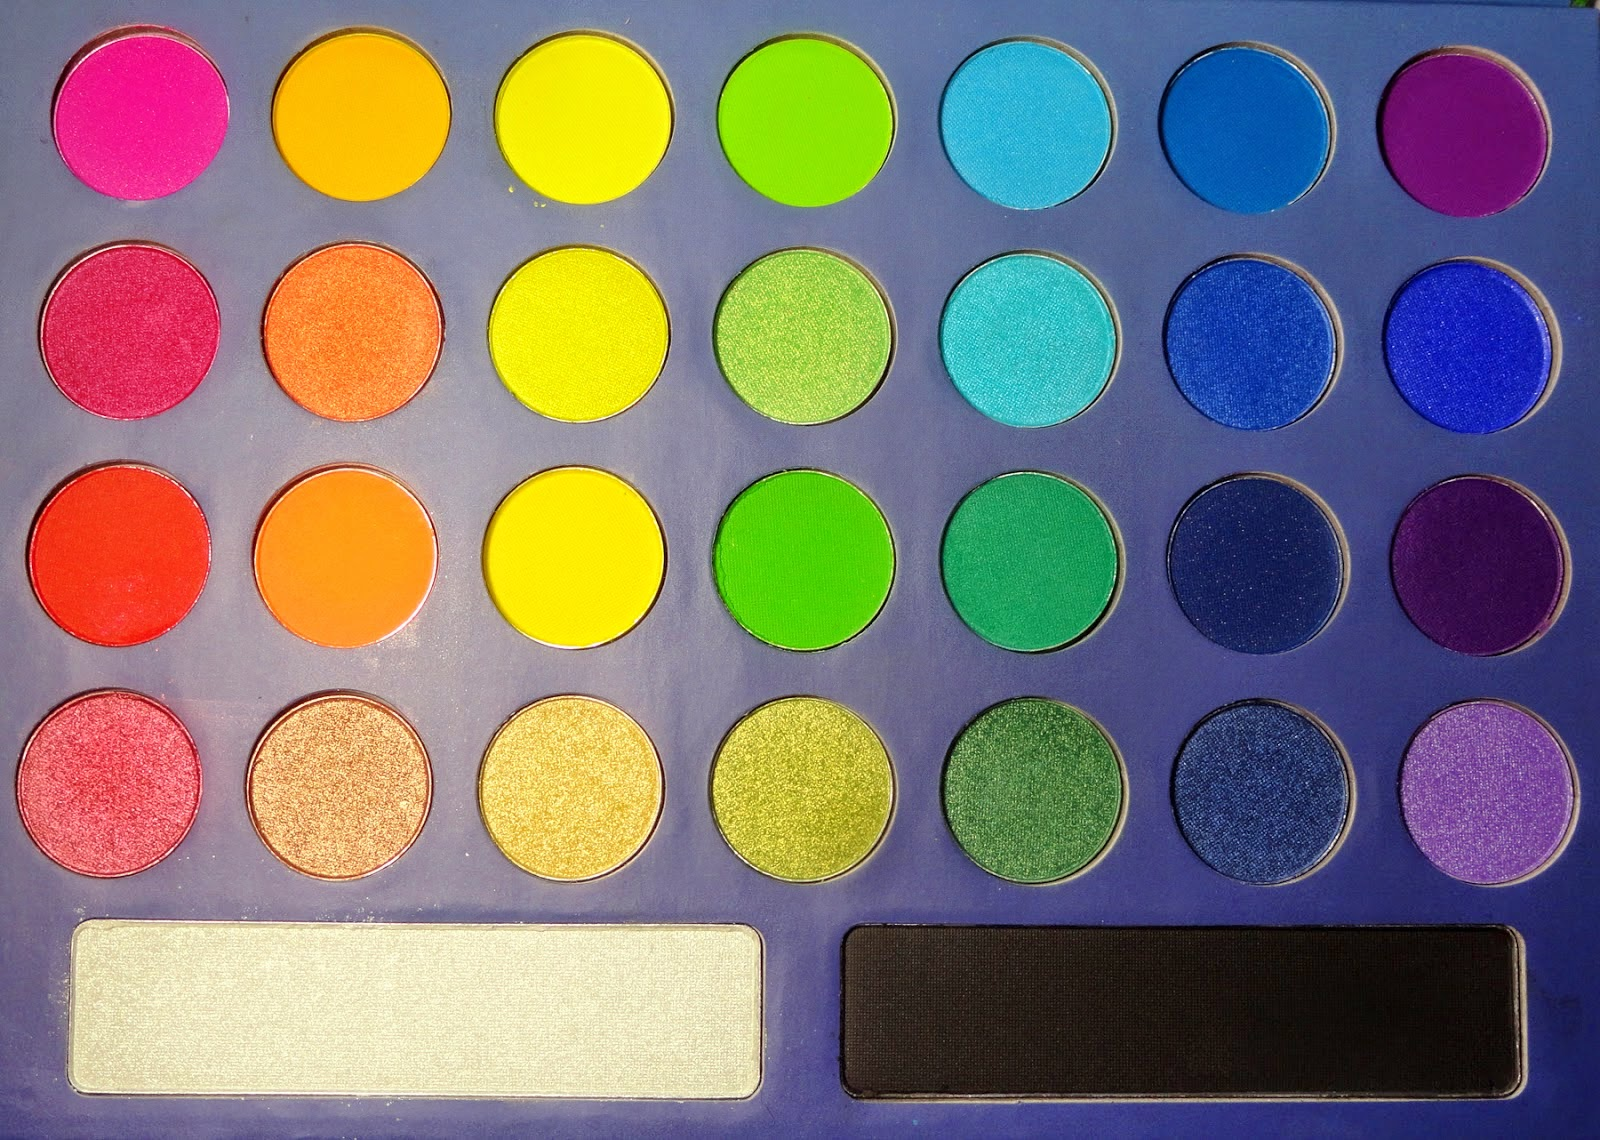 http://www.bhcosmetics.com/products/brazil-eyeshadow-palette